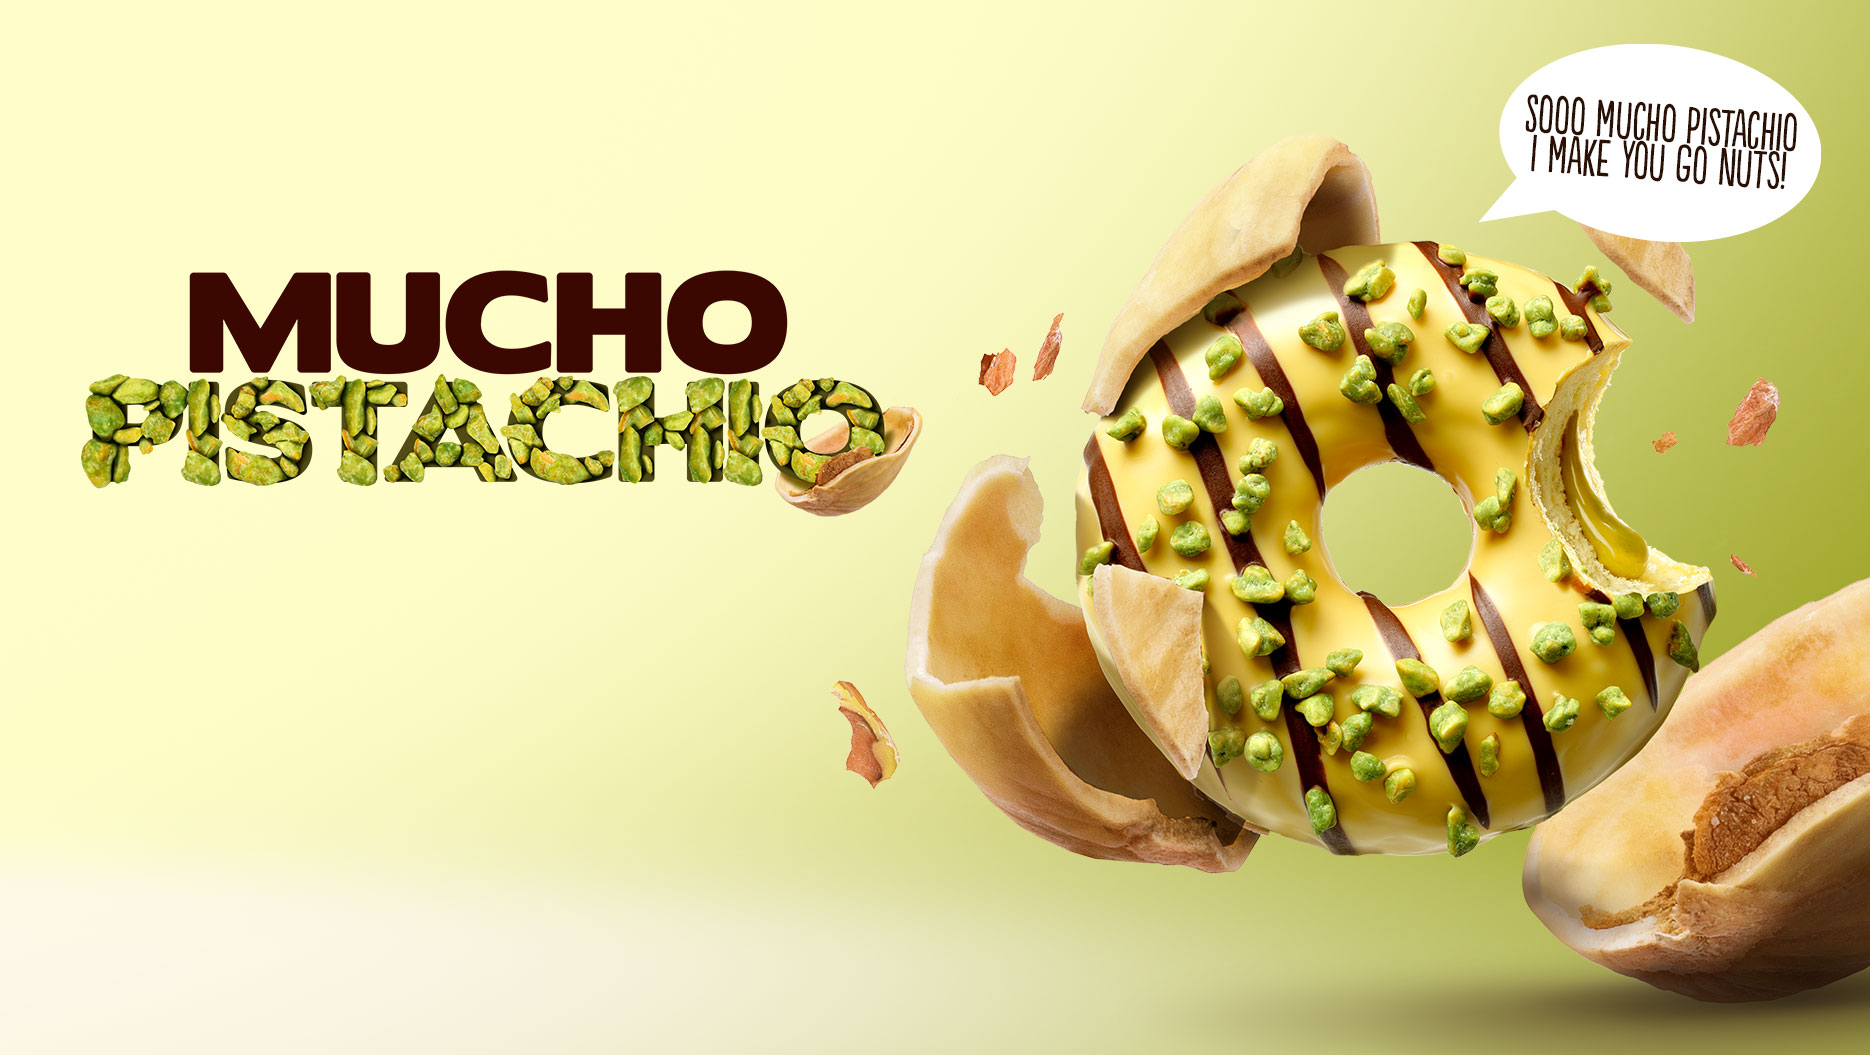 DNWBH-product-detail-top-of-bites-mucho-pistachio.jpg